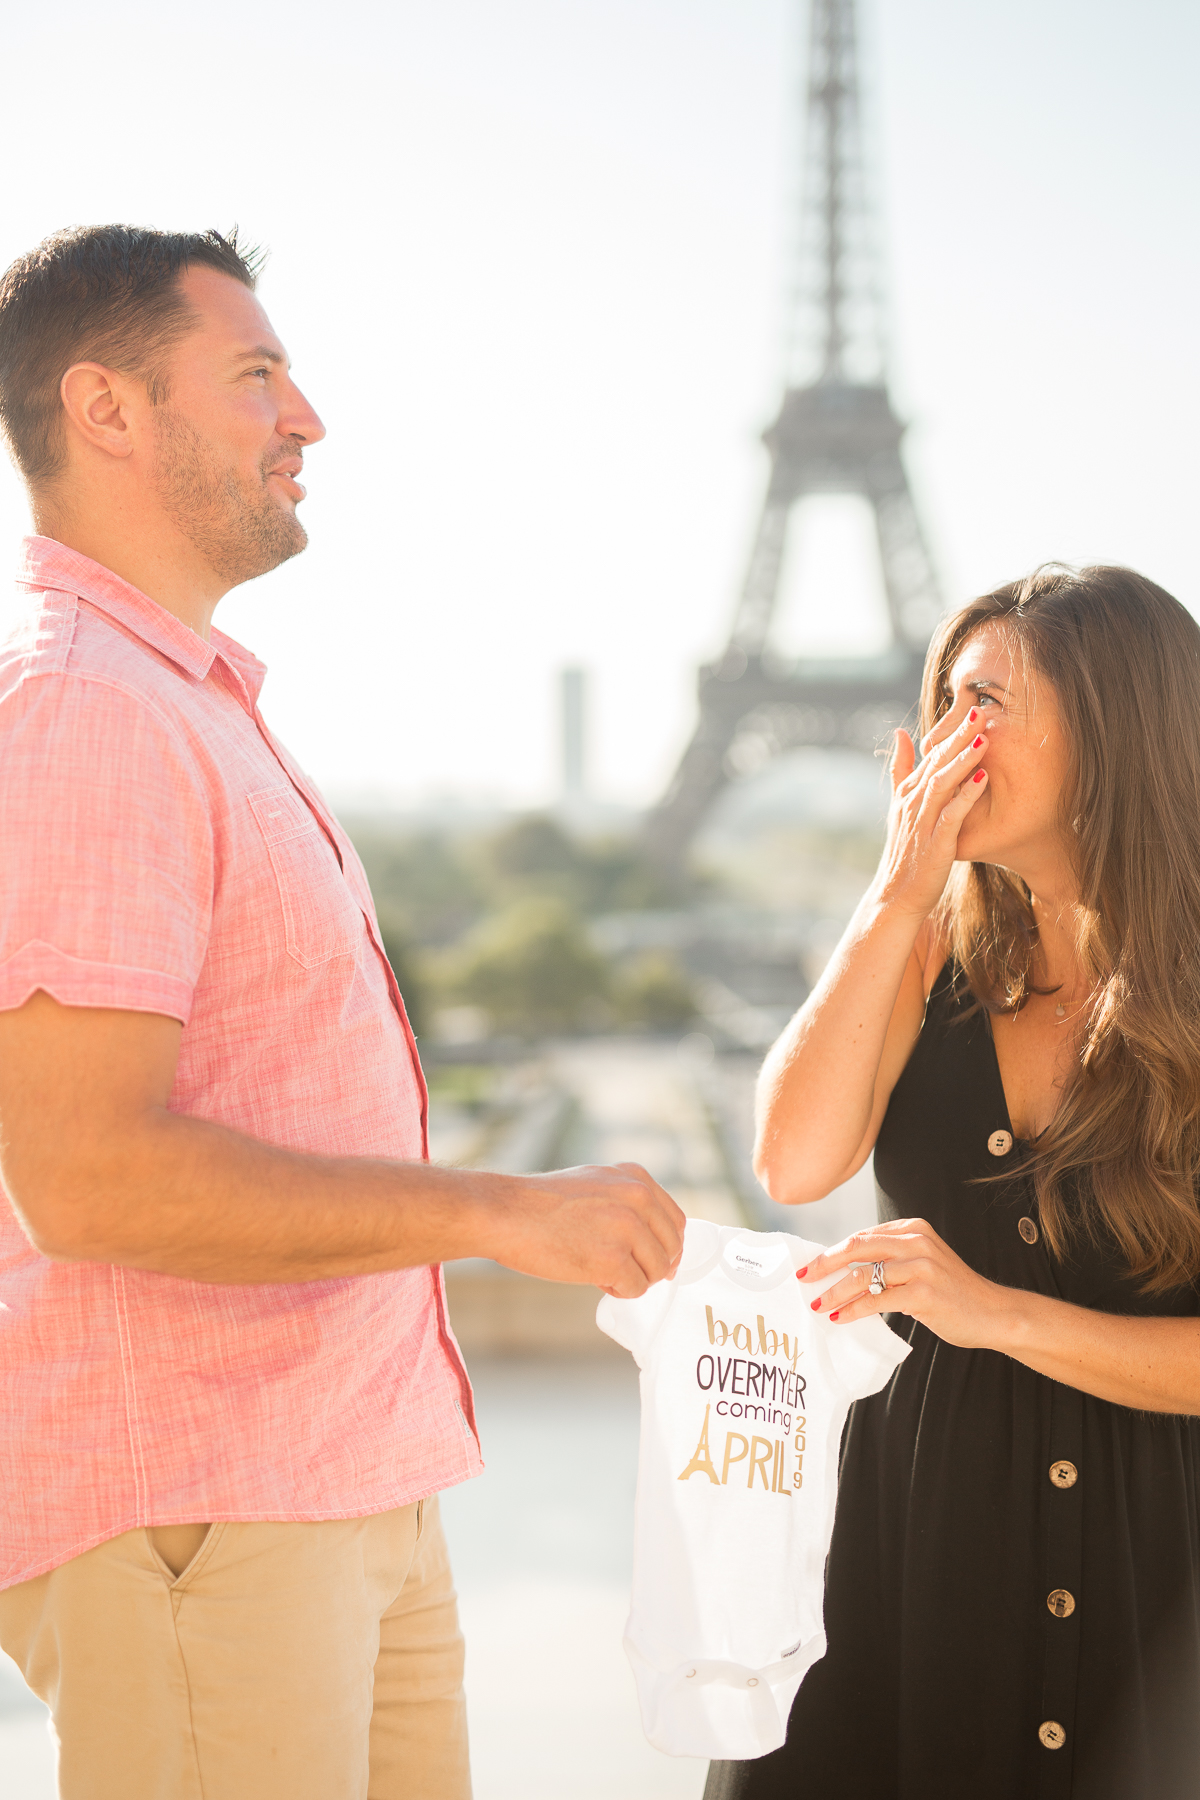 eiffel-tower-pregnancy-announcement-paris-english-speaking-photographers-katie-donnelly-photography_002.jpg